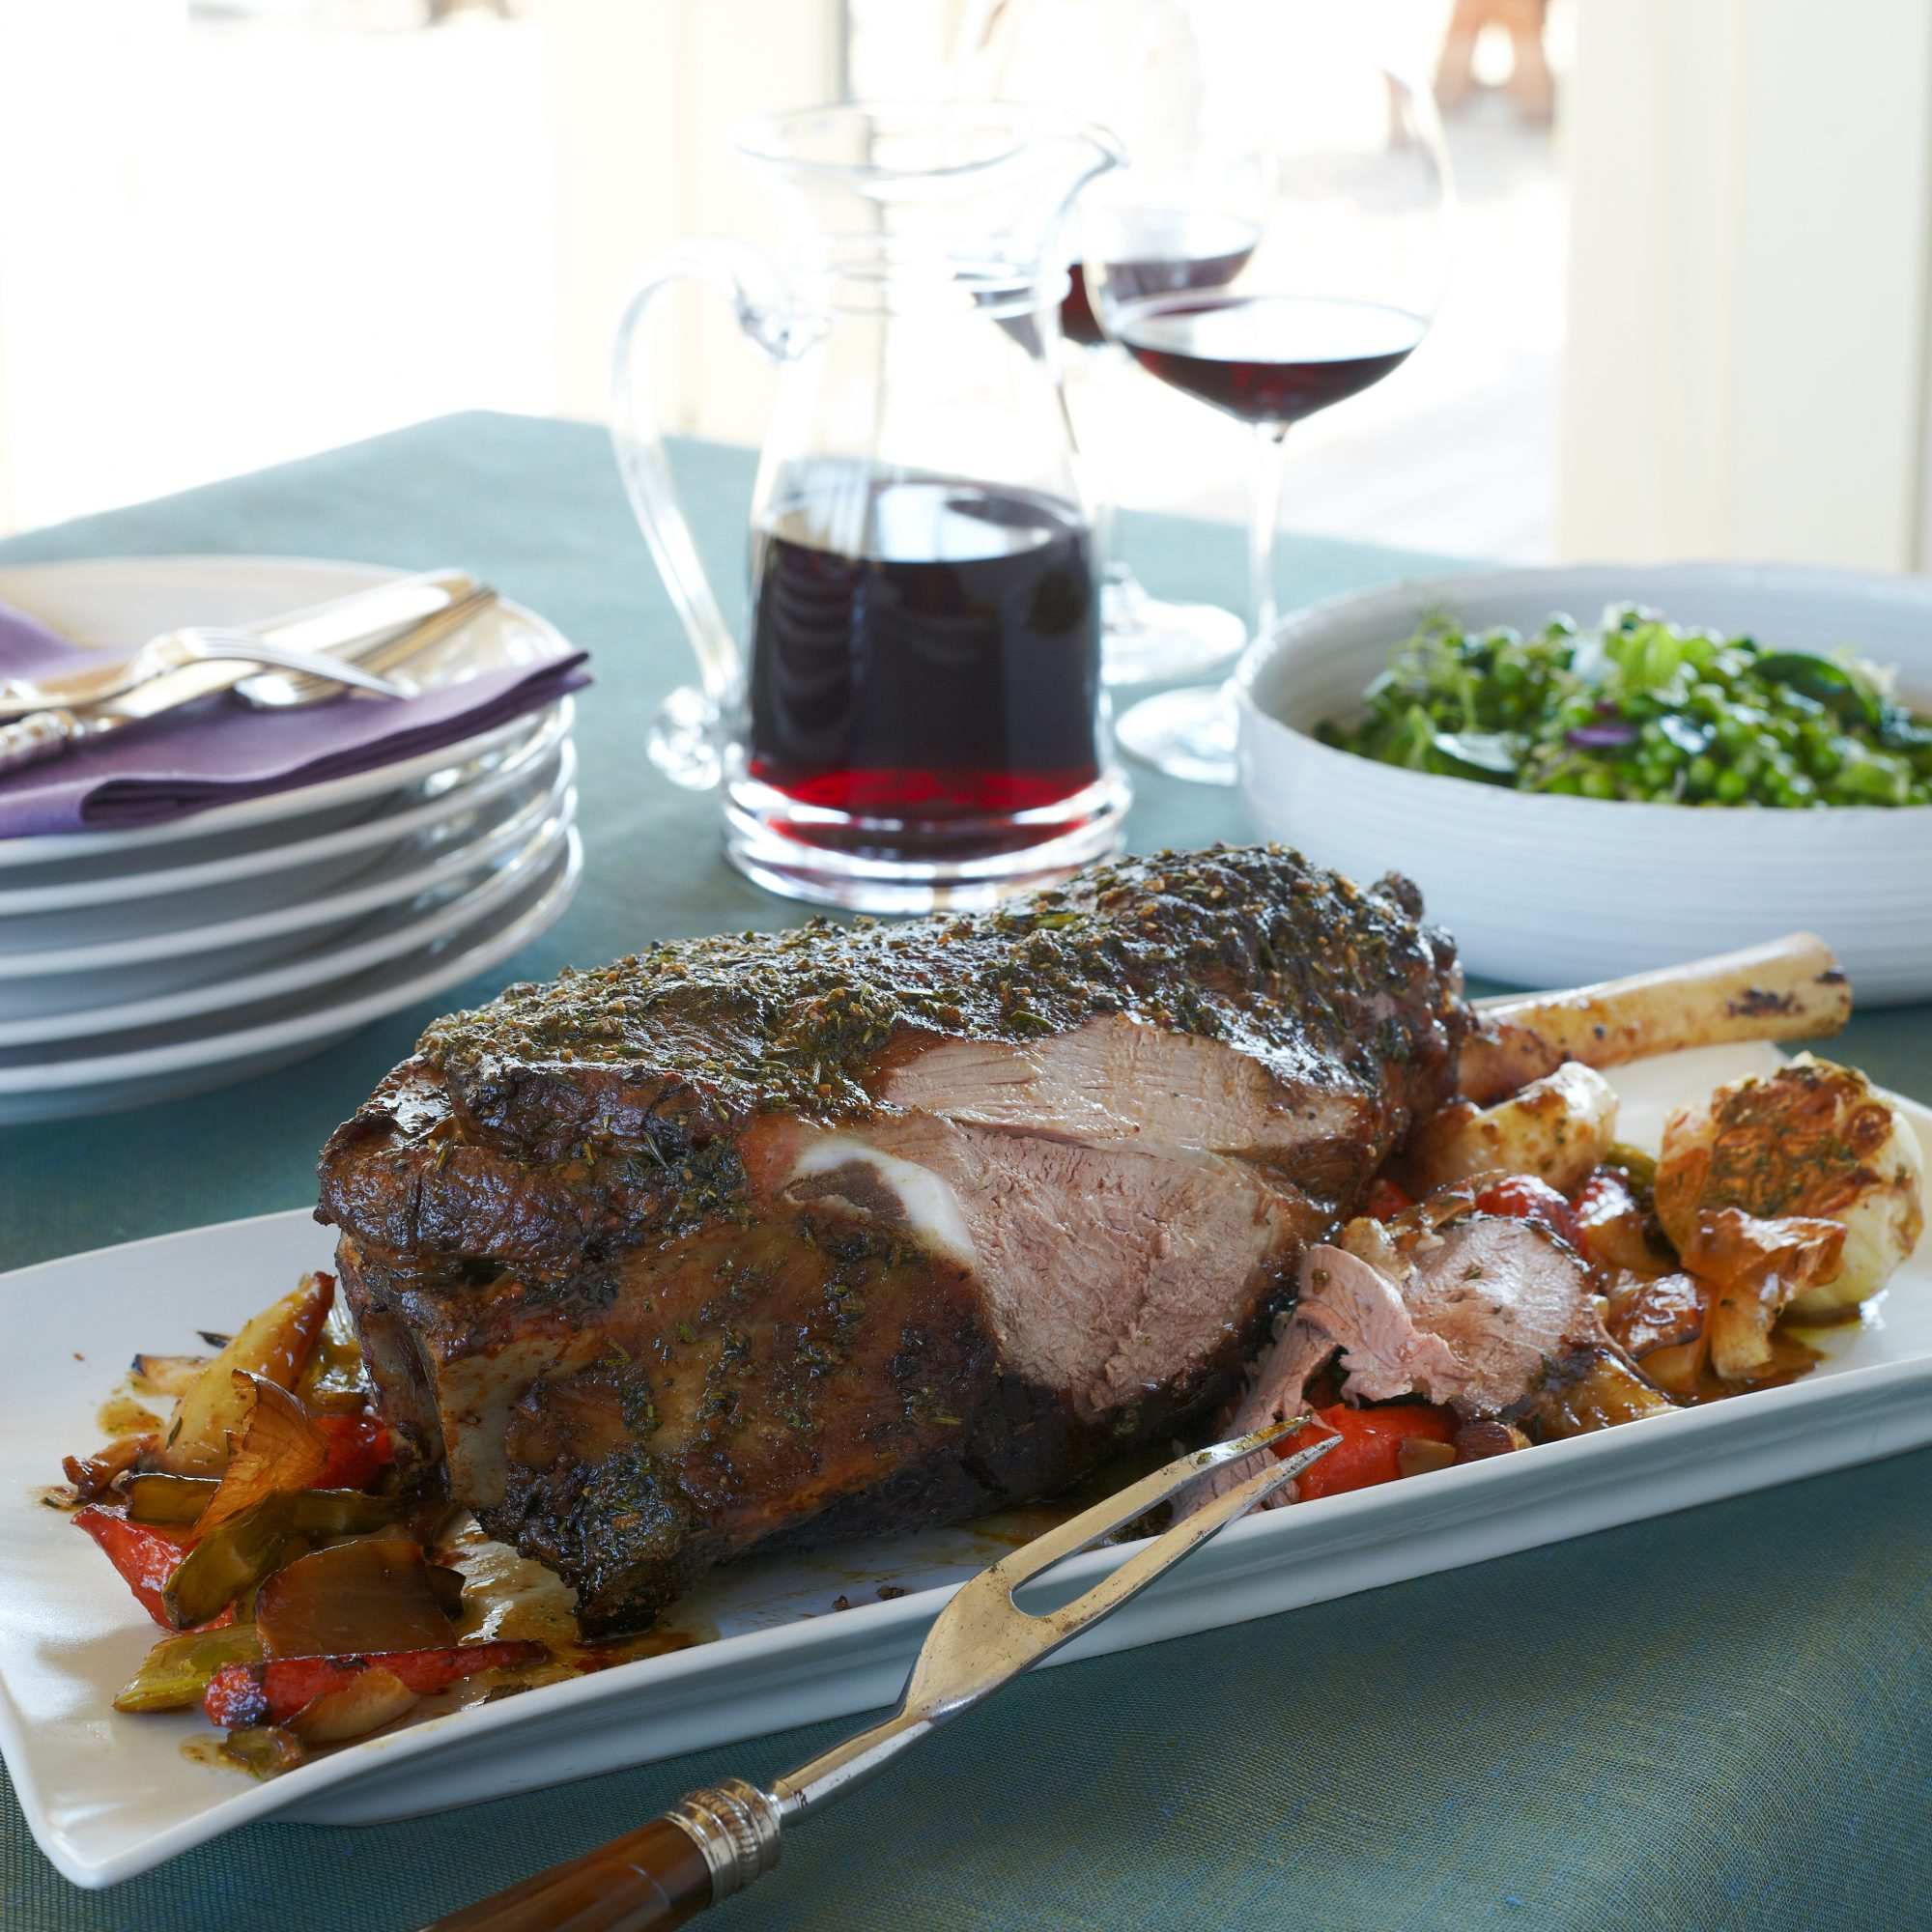 original-201204-r-garlic-and-herb-crusted-leg-of-lamb.jpg